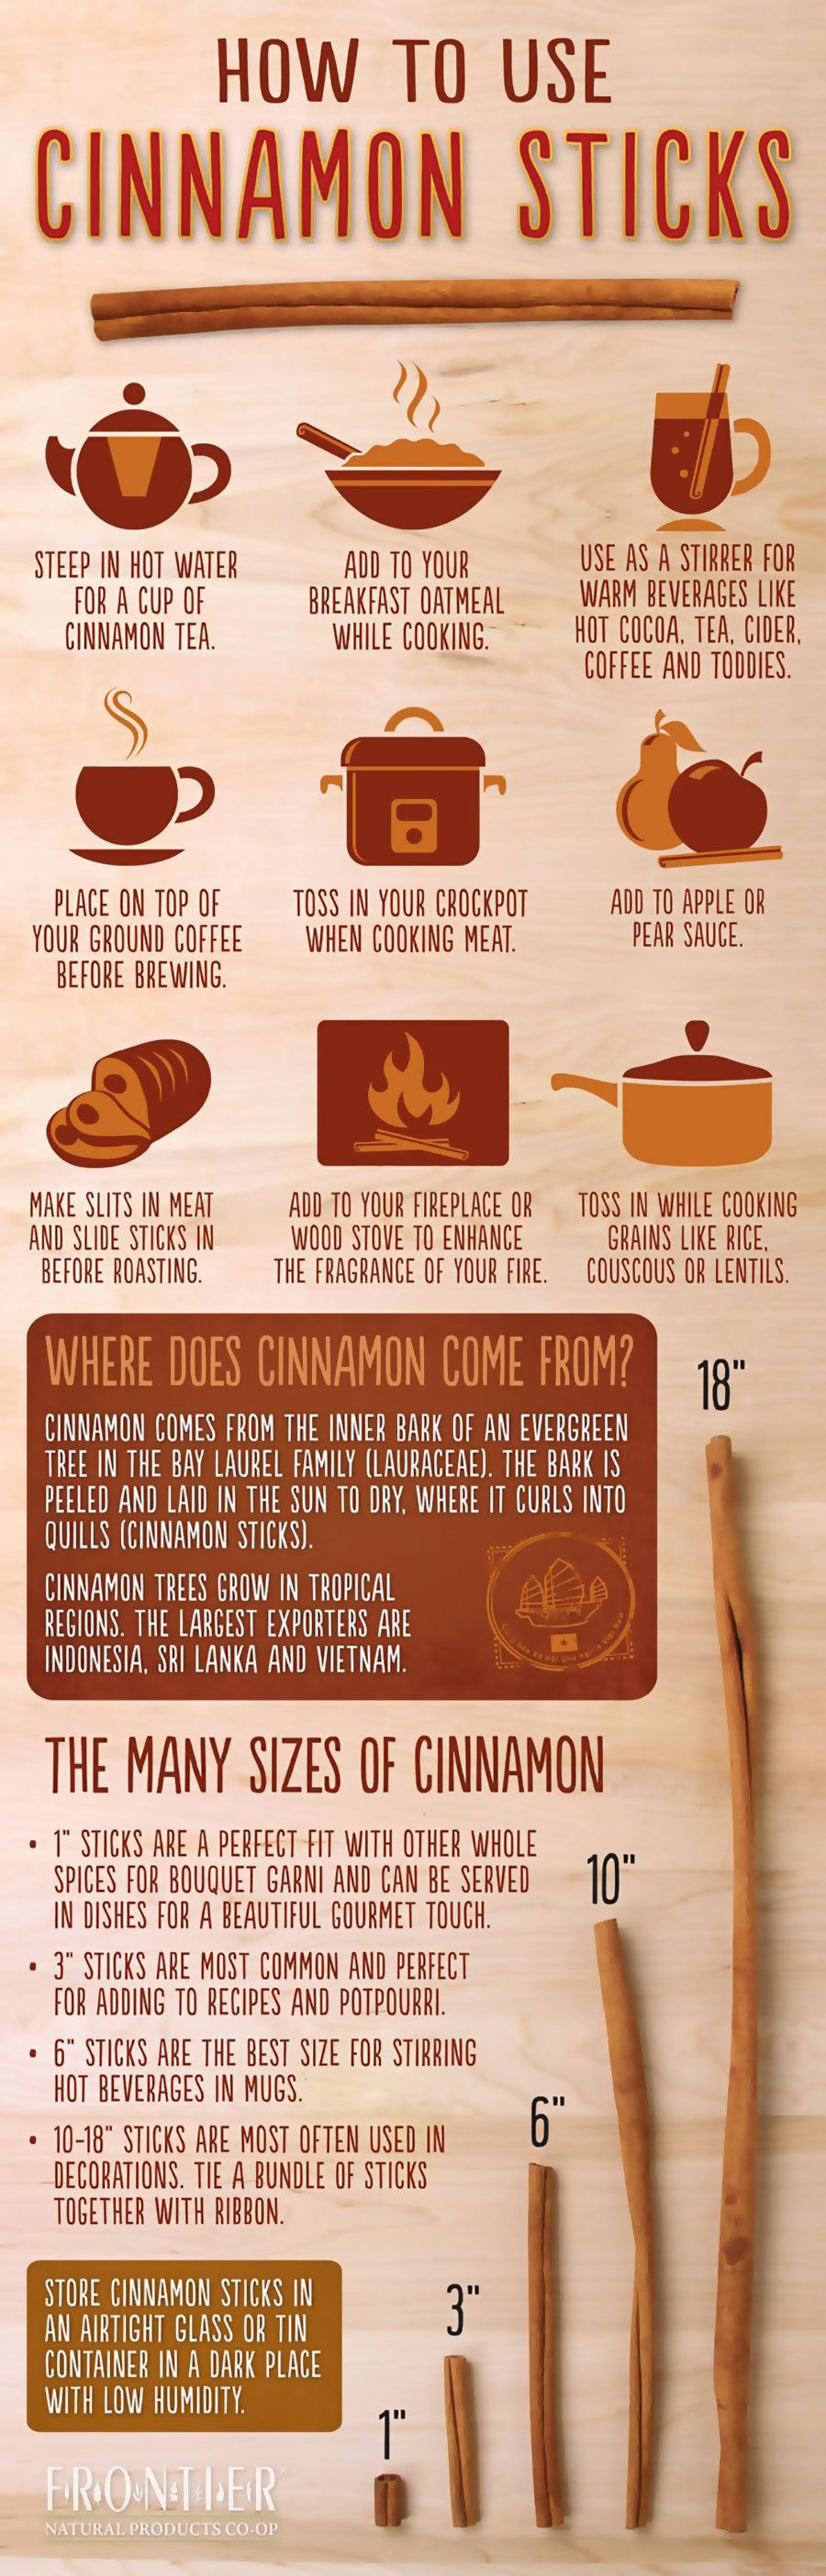 How To Use Cinnamon Sticks